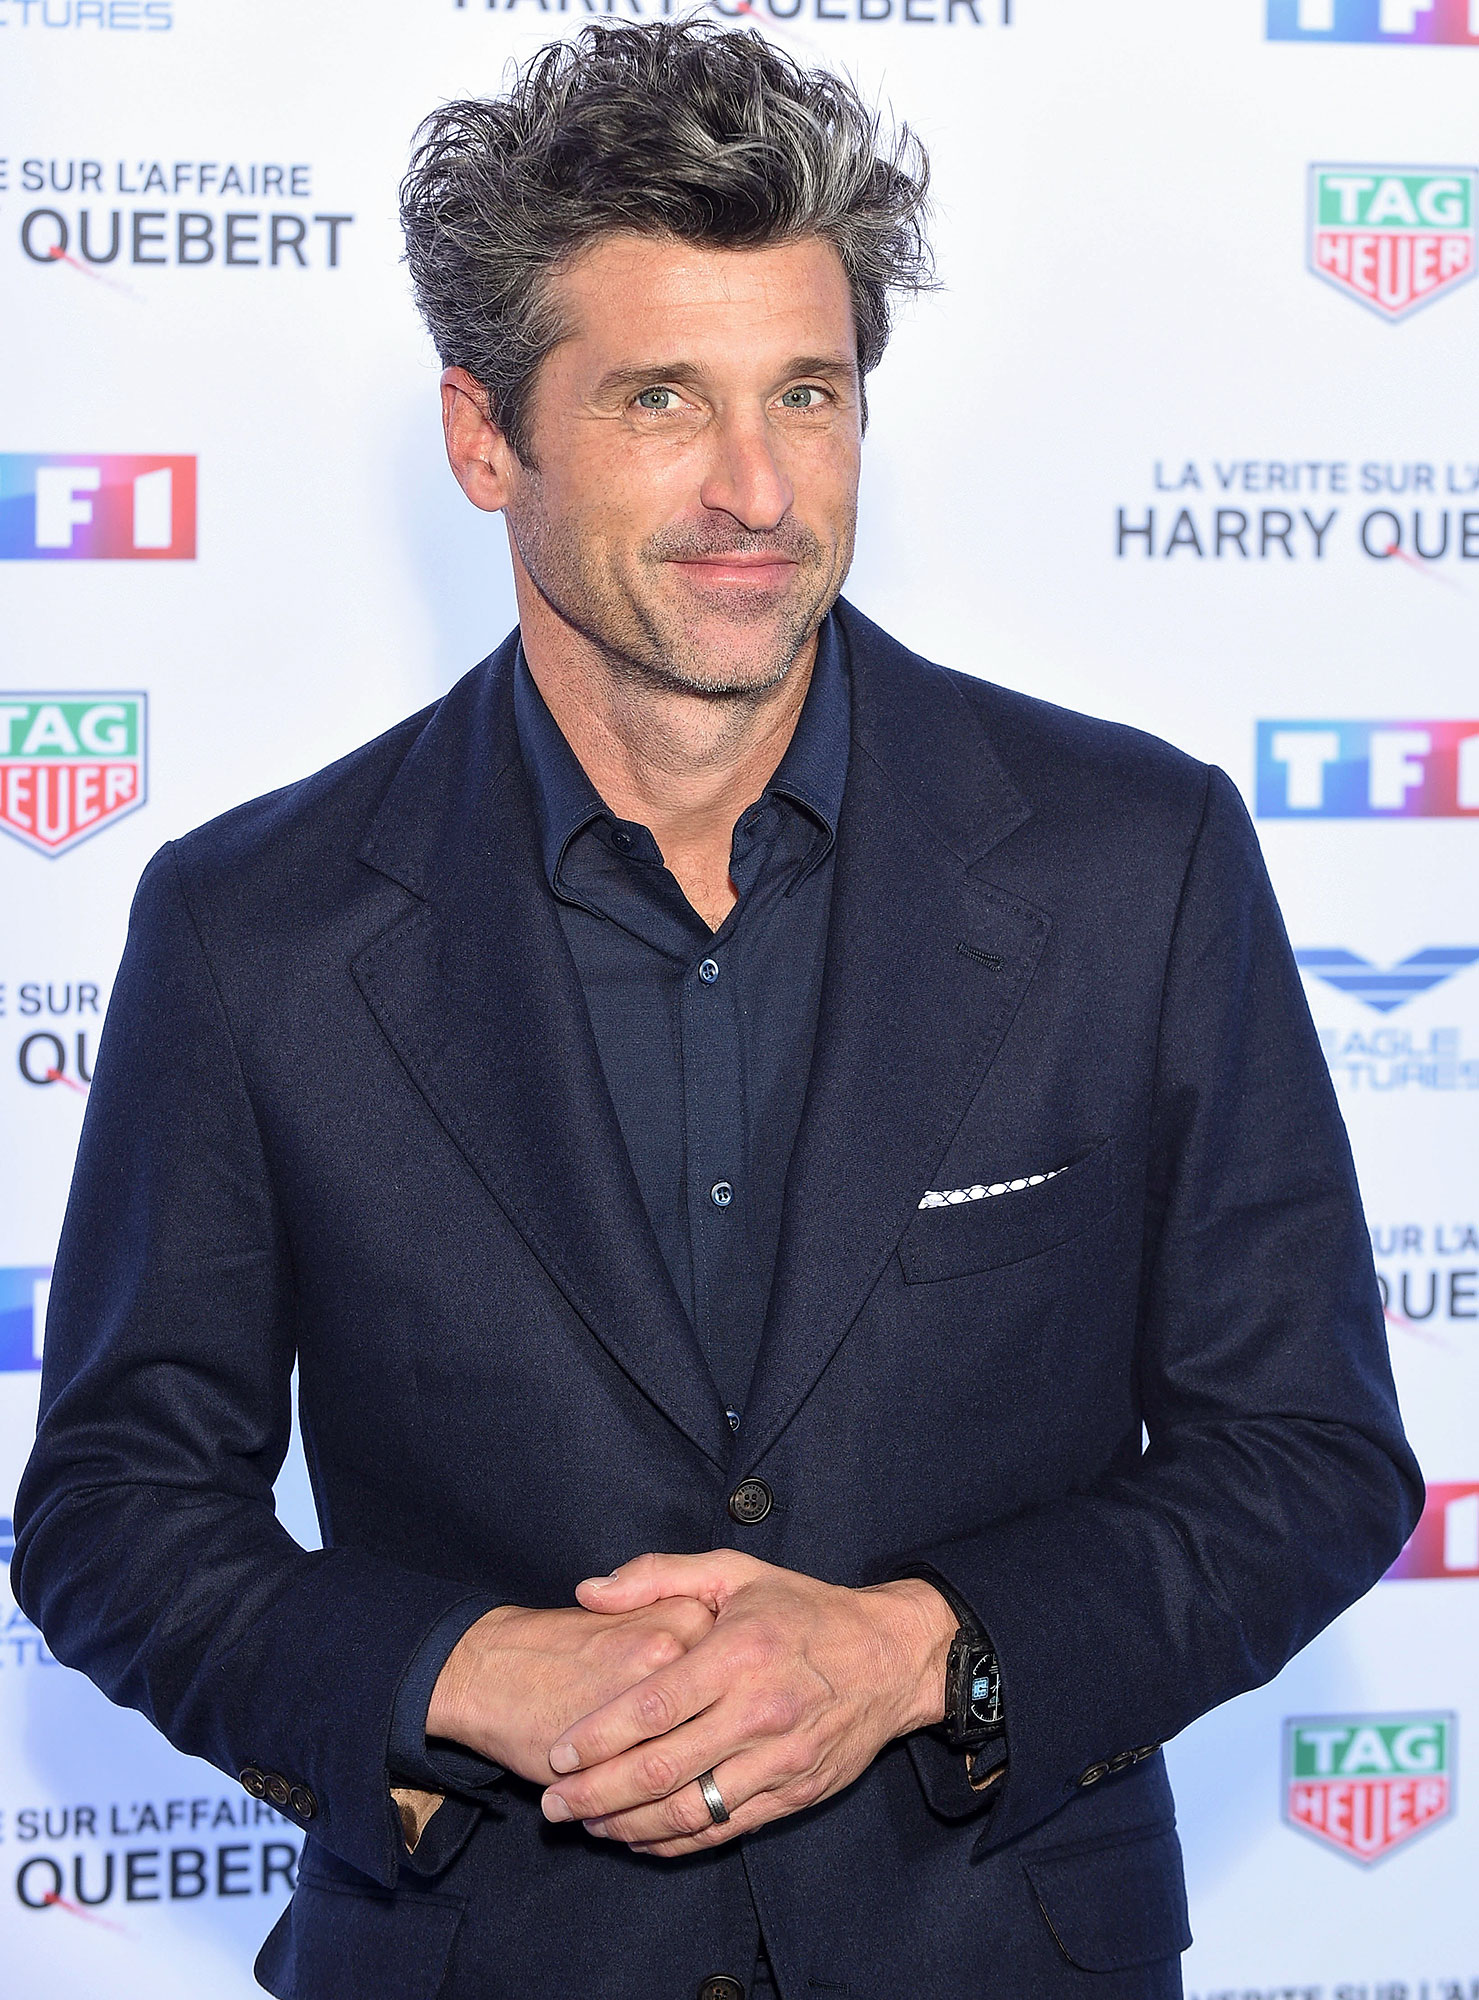 """The Truth About The Harry Quebert Affair - La Verite Sur L'Affaire Harry Quebert"" : Paris Photocall At Cinema Gaumont Marignan"